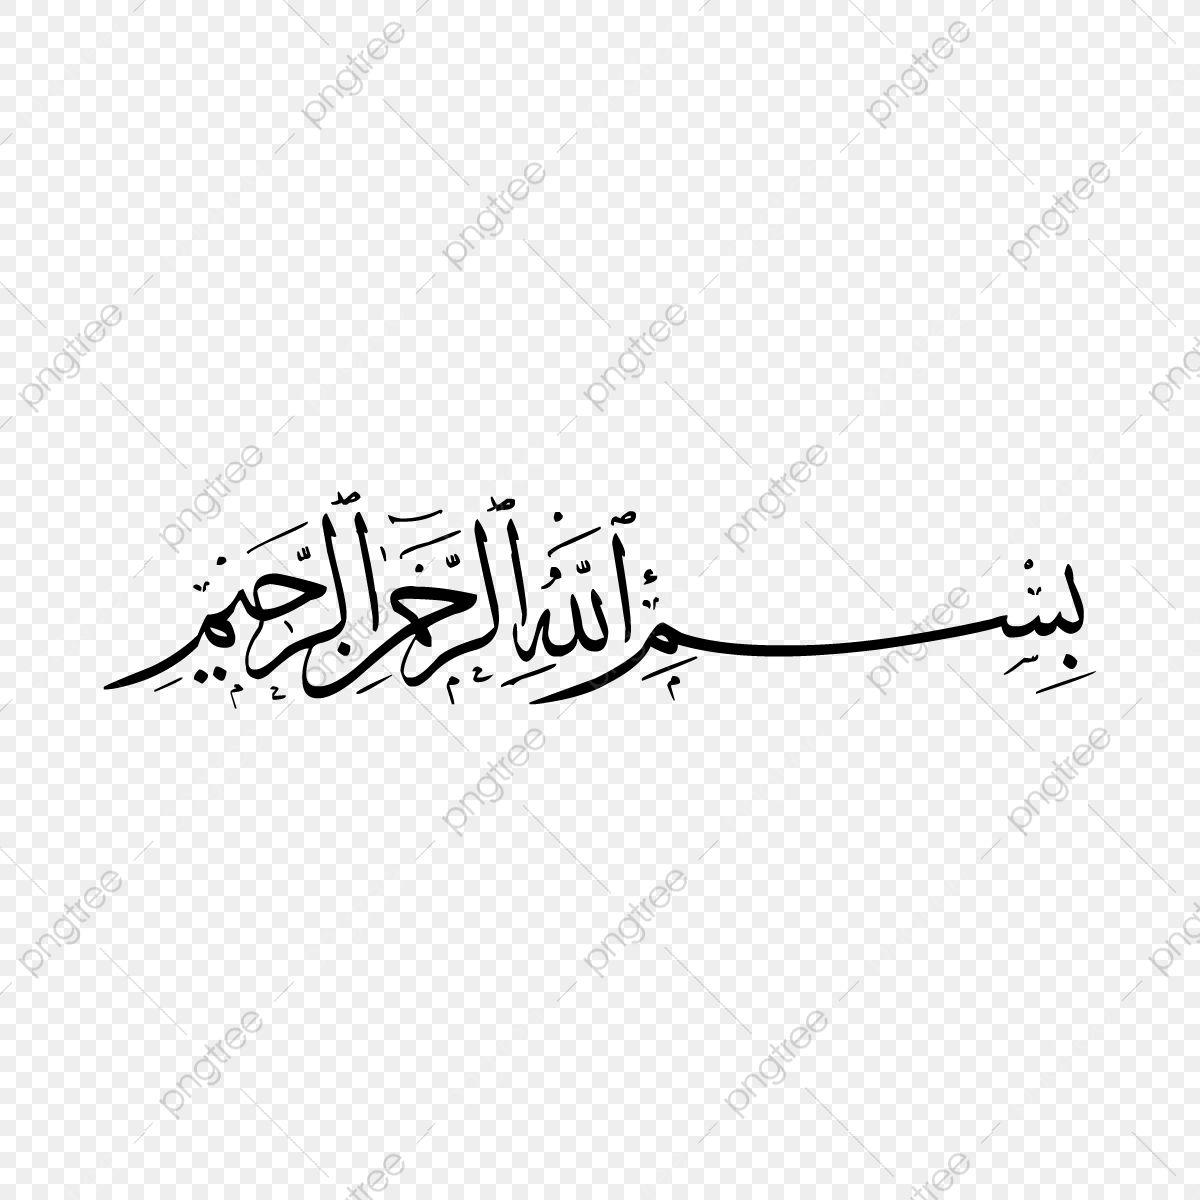 Bismillah Calligraphy 2 Bw Bismillah Calligraphy Bismillahcalligraphy Png And Vector With Transparent Background For Free Download Bismillah Calligraphy Graphic Design Background Templates Anime Wallpaper 1920x1080